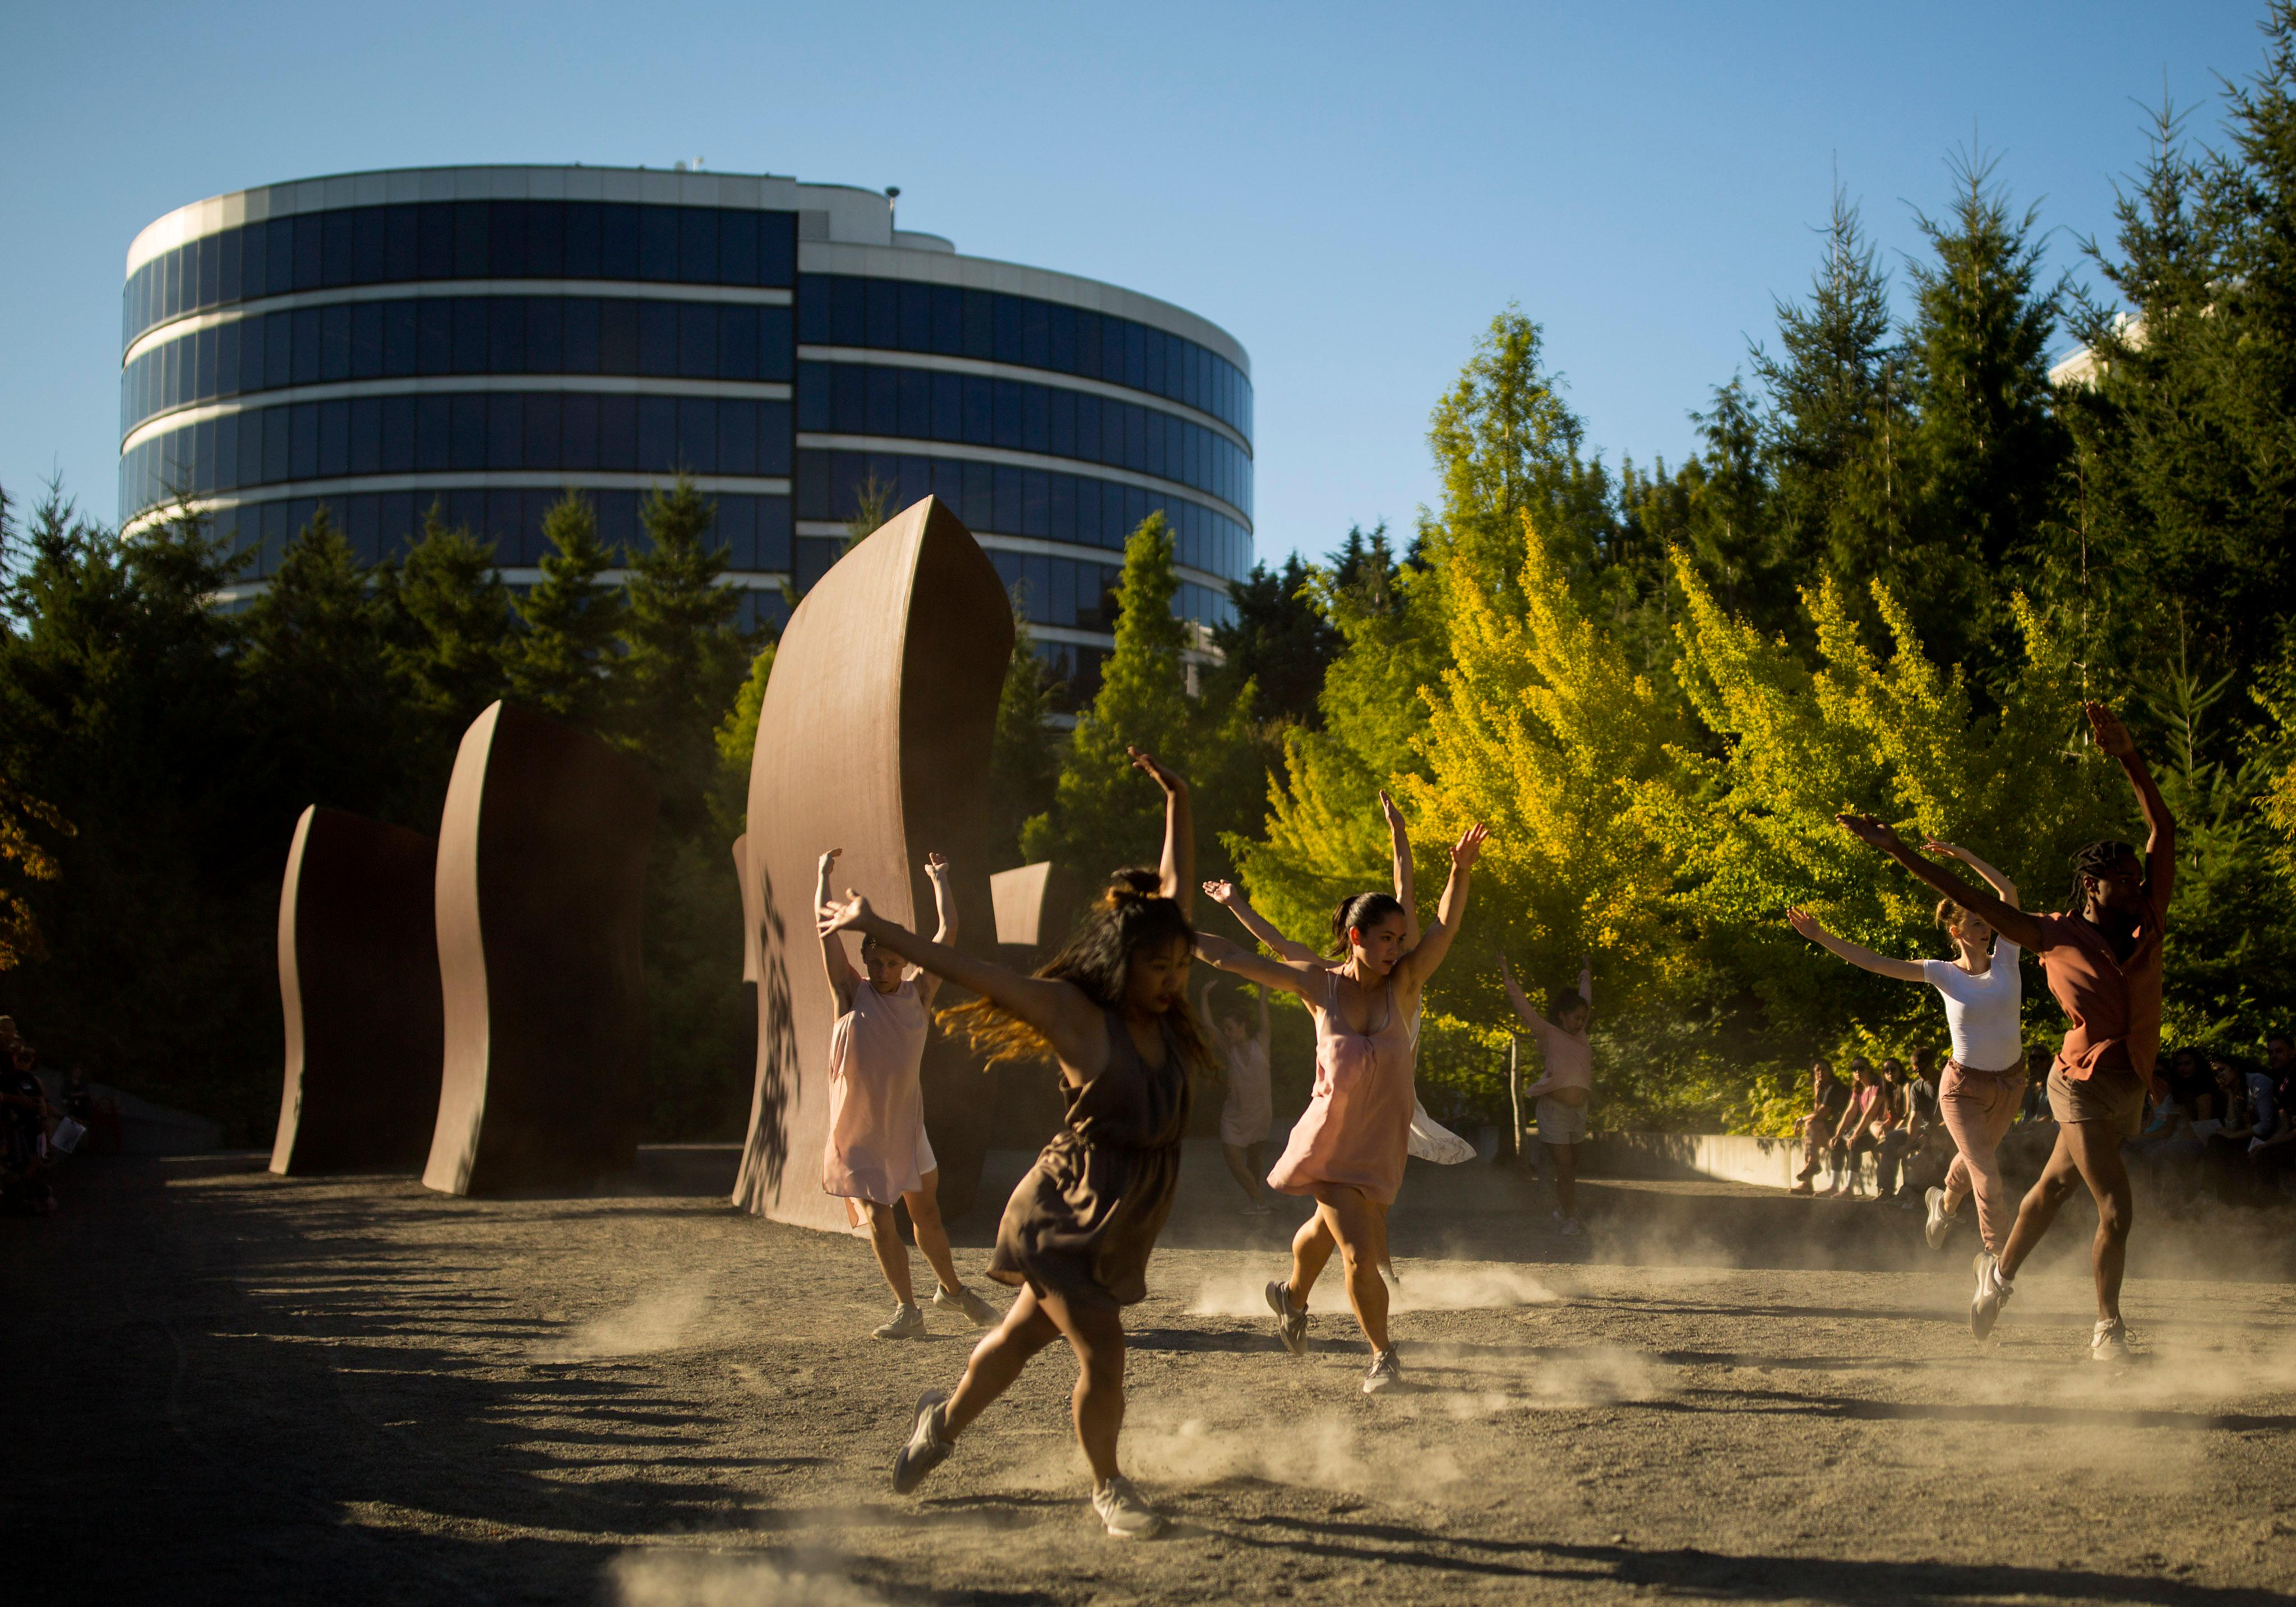 Dancers took over the Olympic Sculpture Park Thursday evening for a second year in a row as the Pacific Northwest Ballet returned with new site-specific dance works presented during the free Summer at SAM series. As part of The Wallace Foundation's Building Audiences for Sustainability initiative, PNB commissioned works from four local choreographers (Noelani Pantastico, Dani Tirrell, Price Suddarth, Eva Stone), created in conversation with sculptures on-site at the park. (Sy Bean / Seattle Refined)